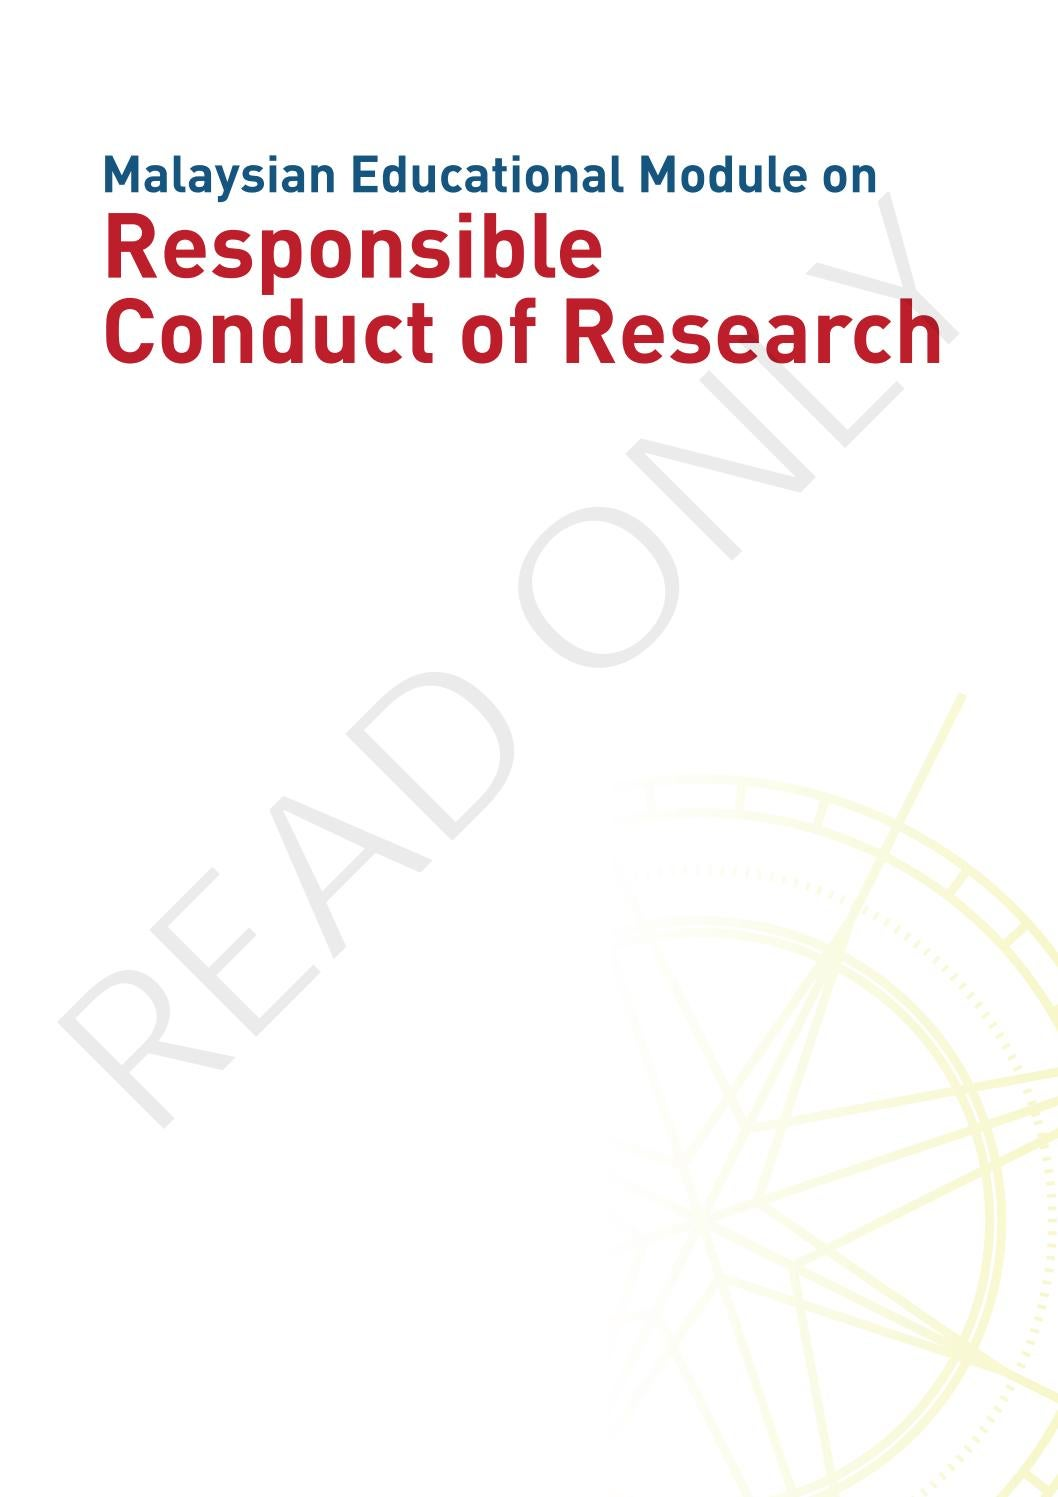 hight resolution of malaysian educational module on responsible conduct of research by academy of sciences malaysia issuu